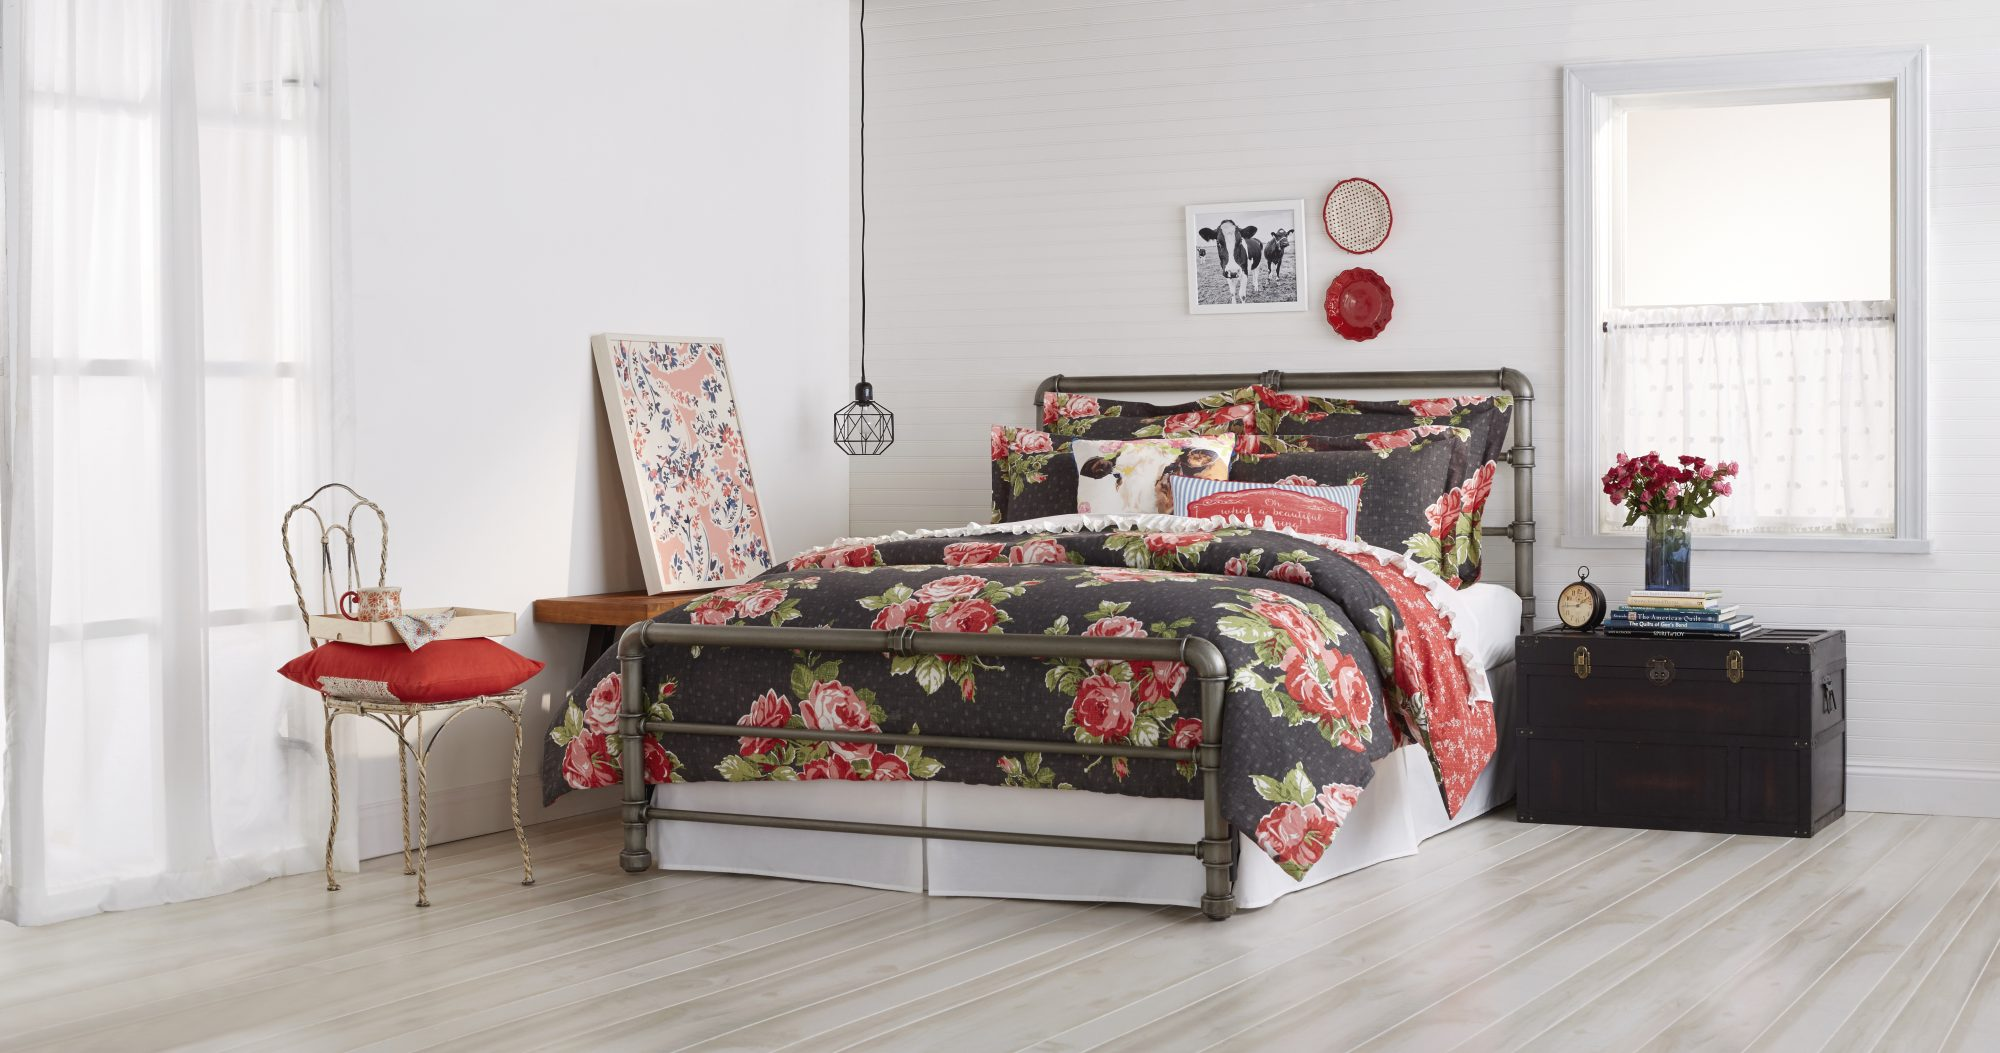 Ree Drummond Bedding